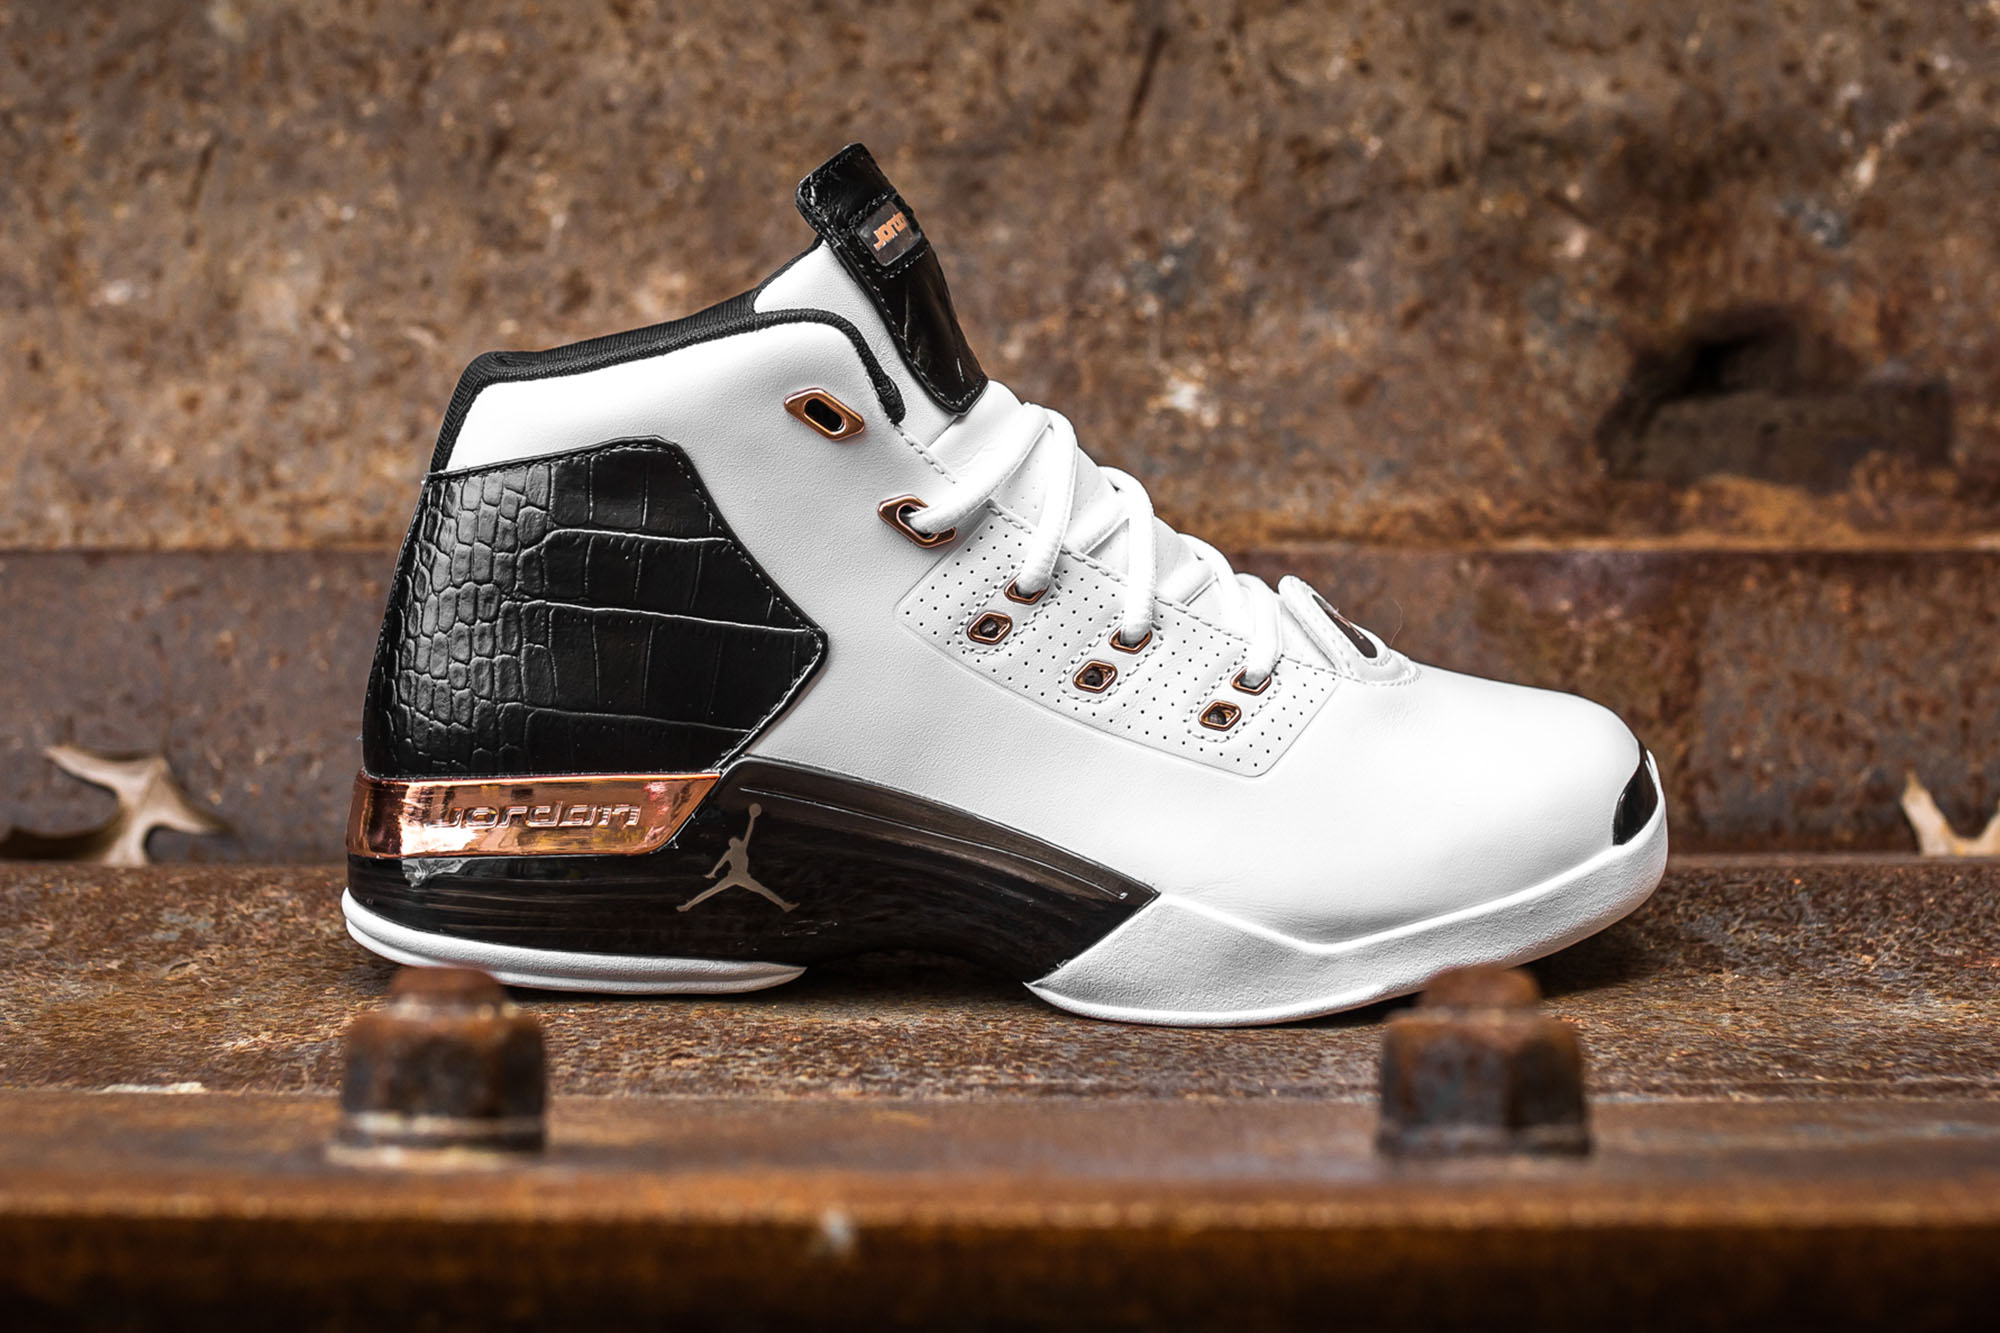 1149995d3cbe6a Take an Intimate Look at the Air Jordan 17+ Retro  Copper -11 ...